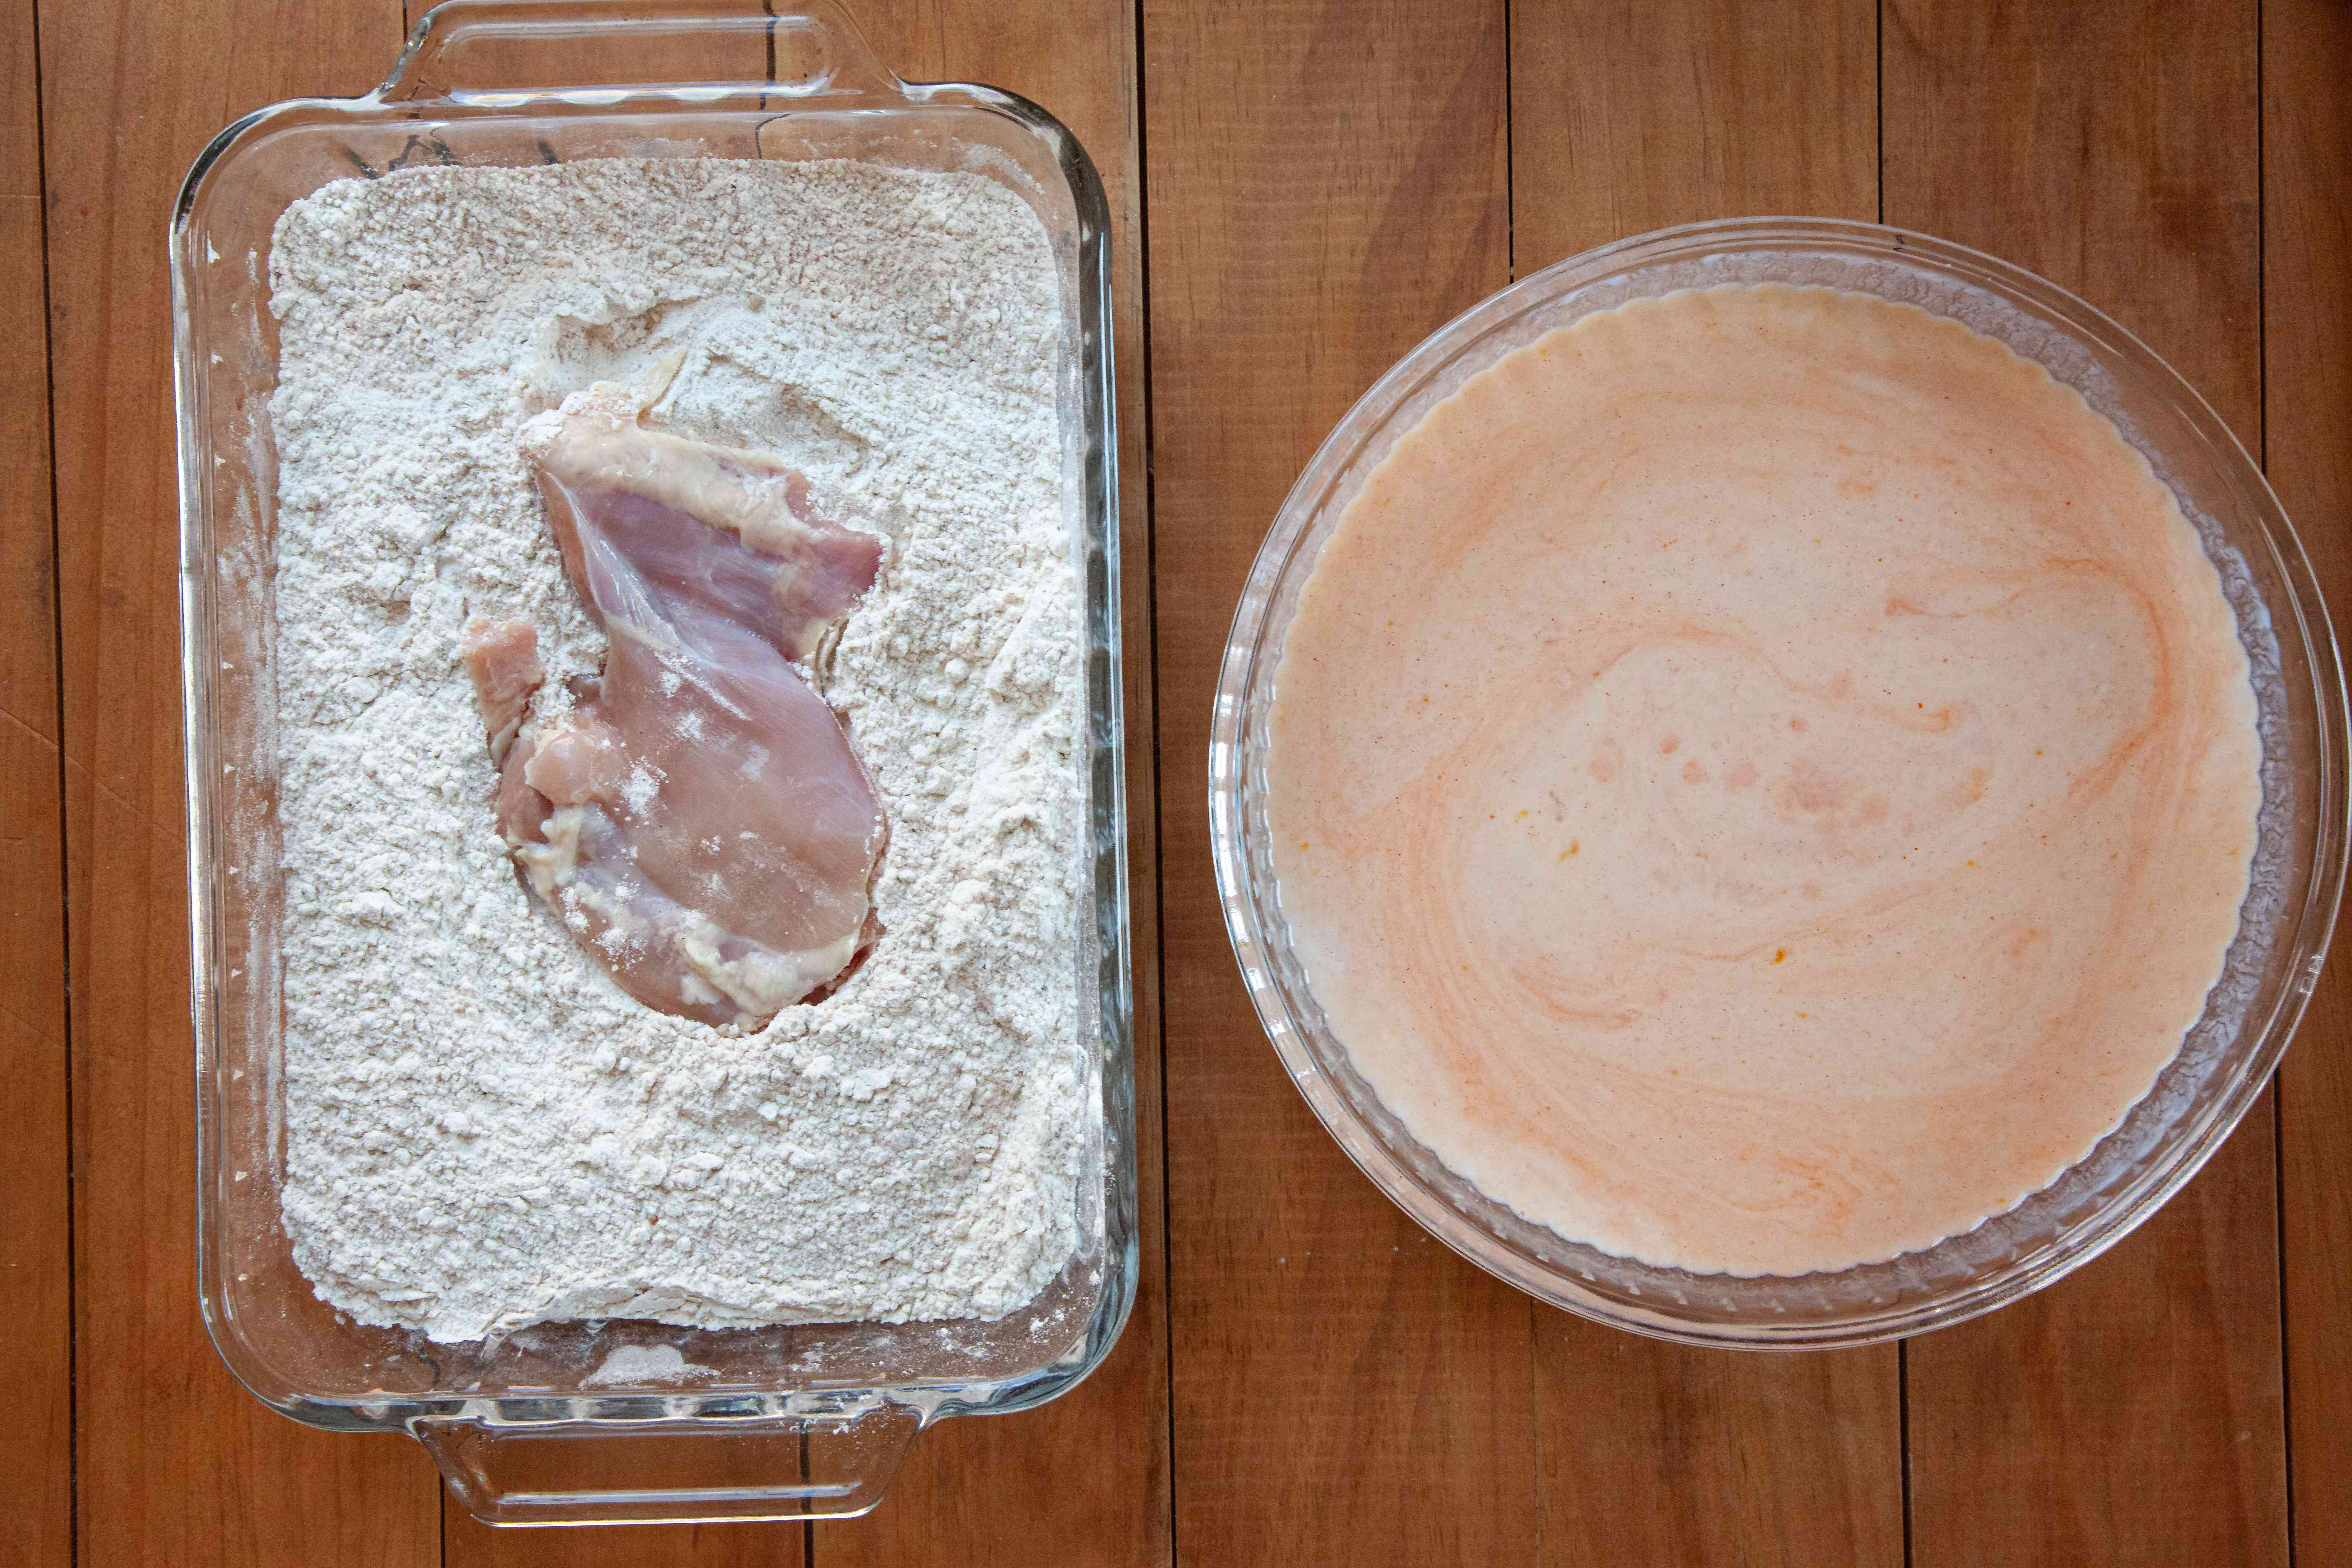 Chicken thighs being coated in flour mixture for a Nashville-style hot fried chicken.